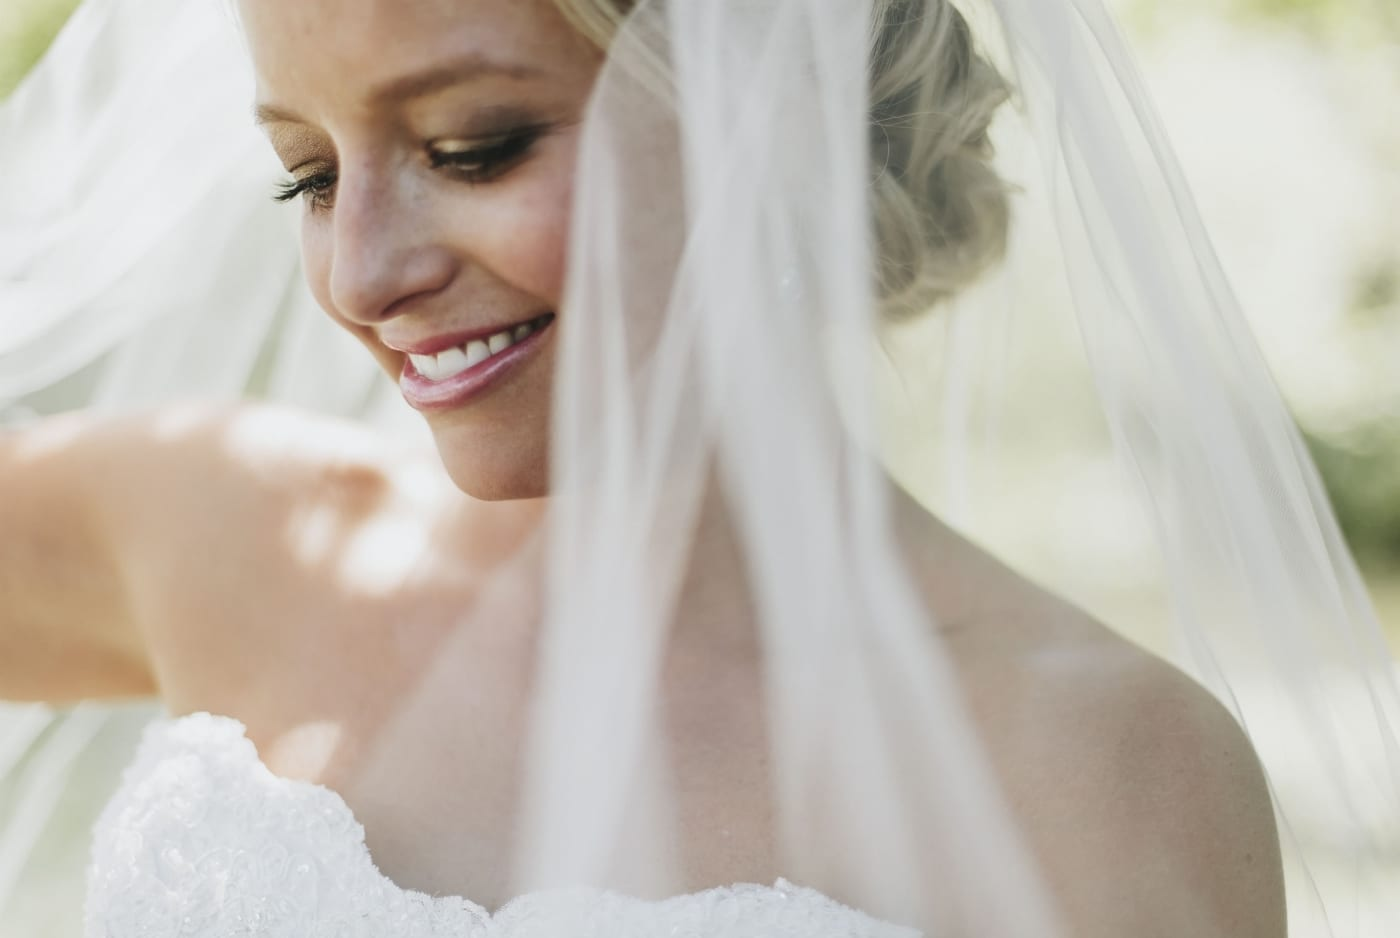 Wedding-Bride-Bridal-Beauty-Feature-Tips